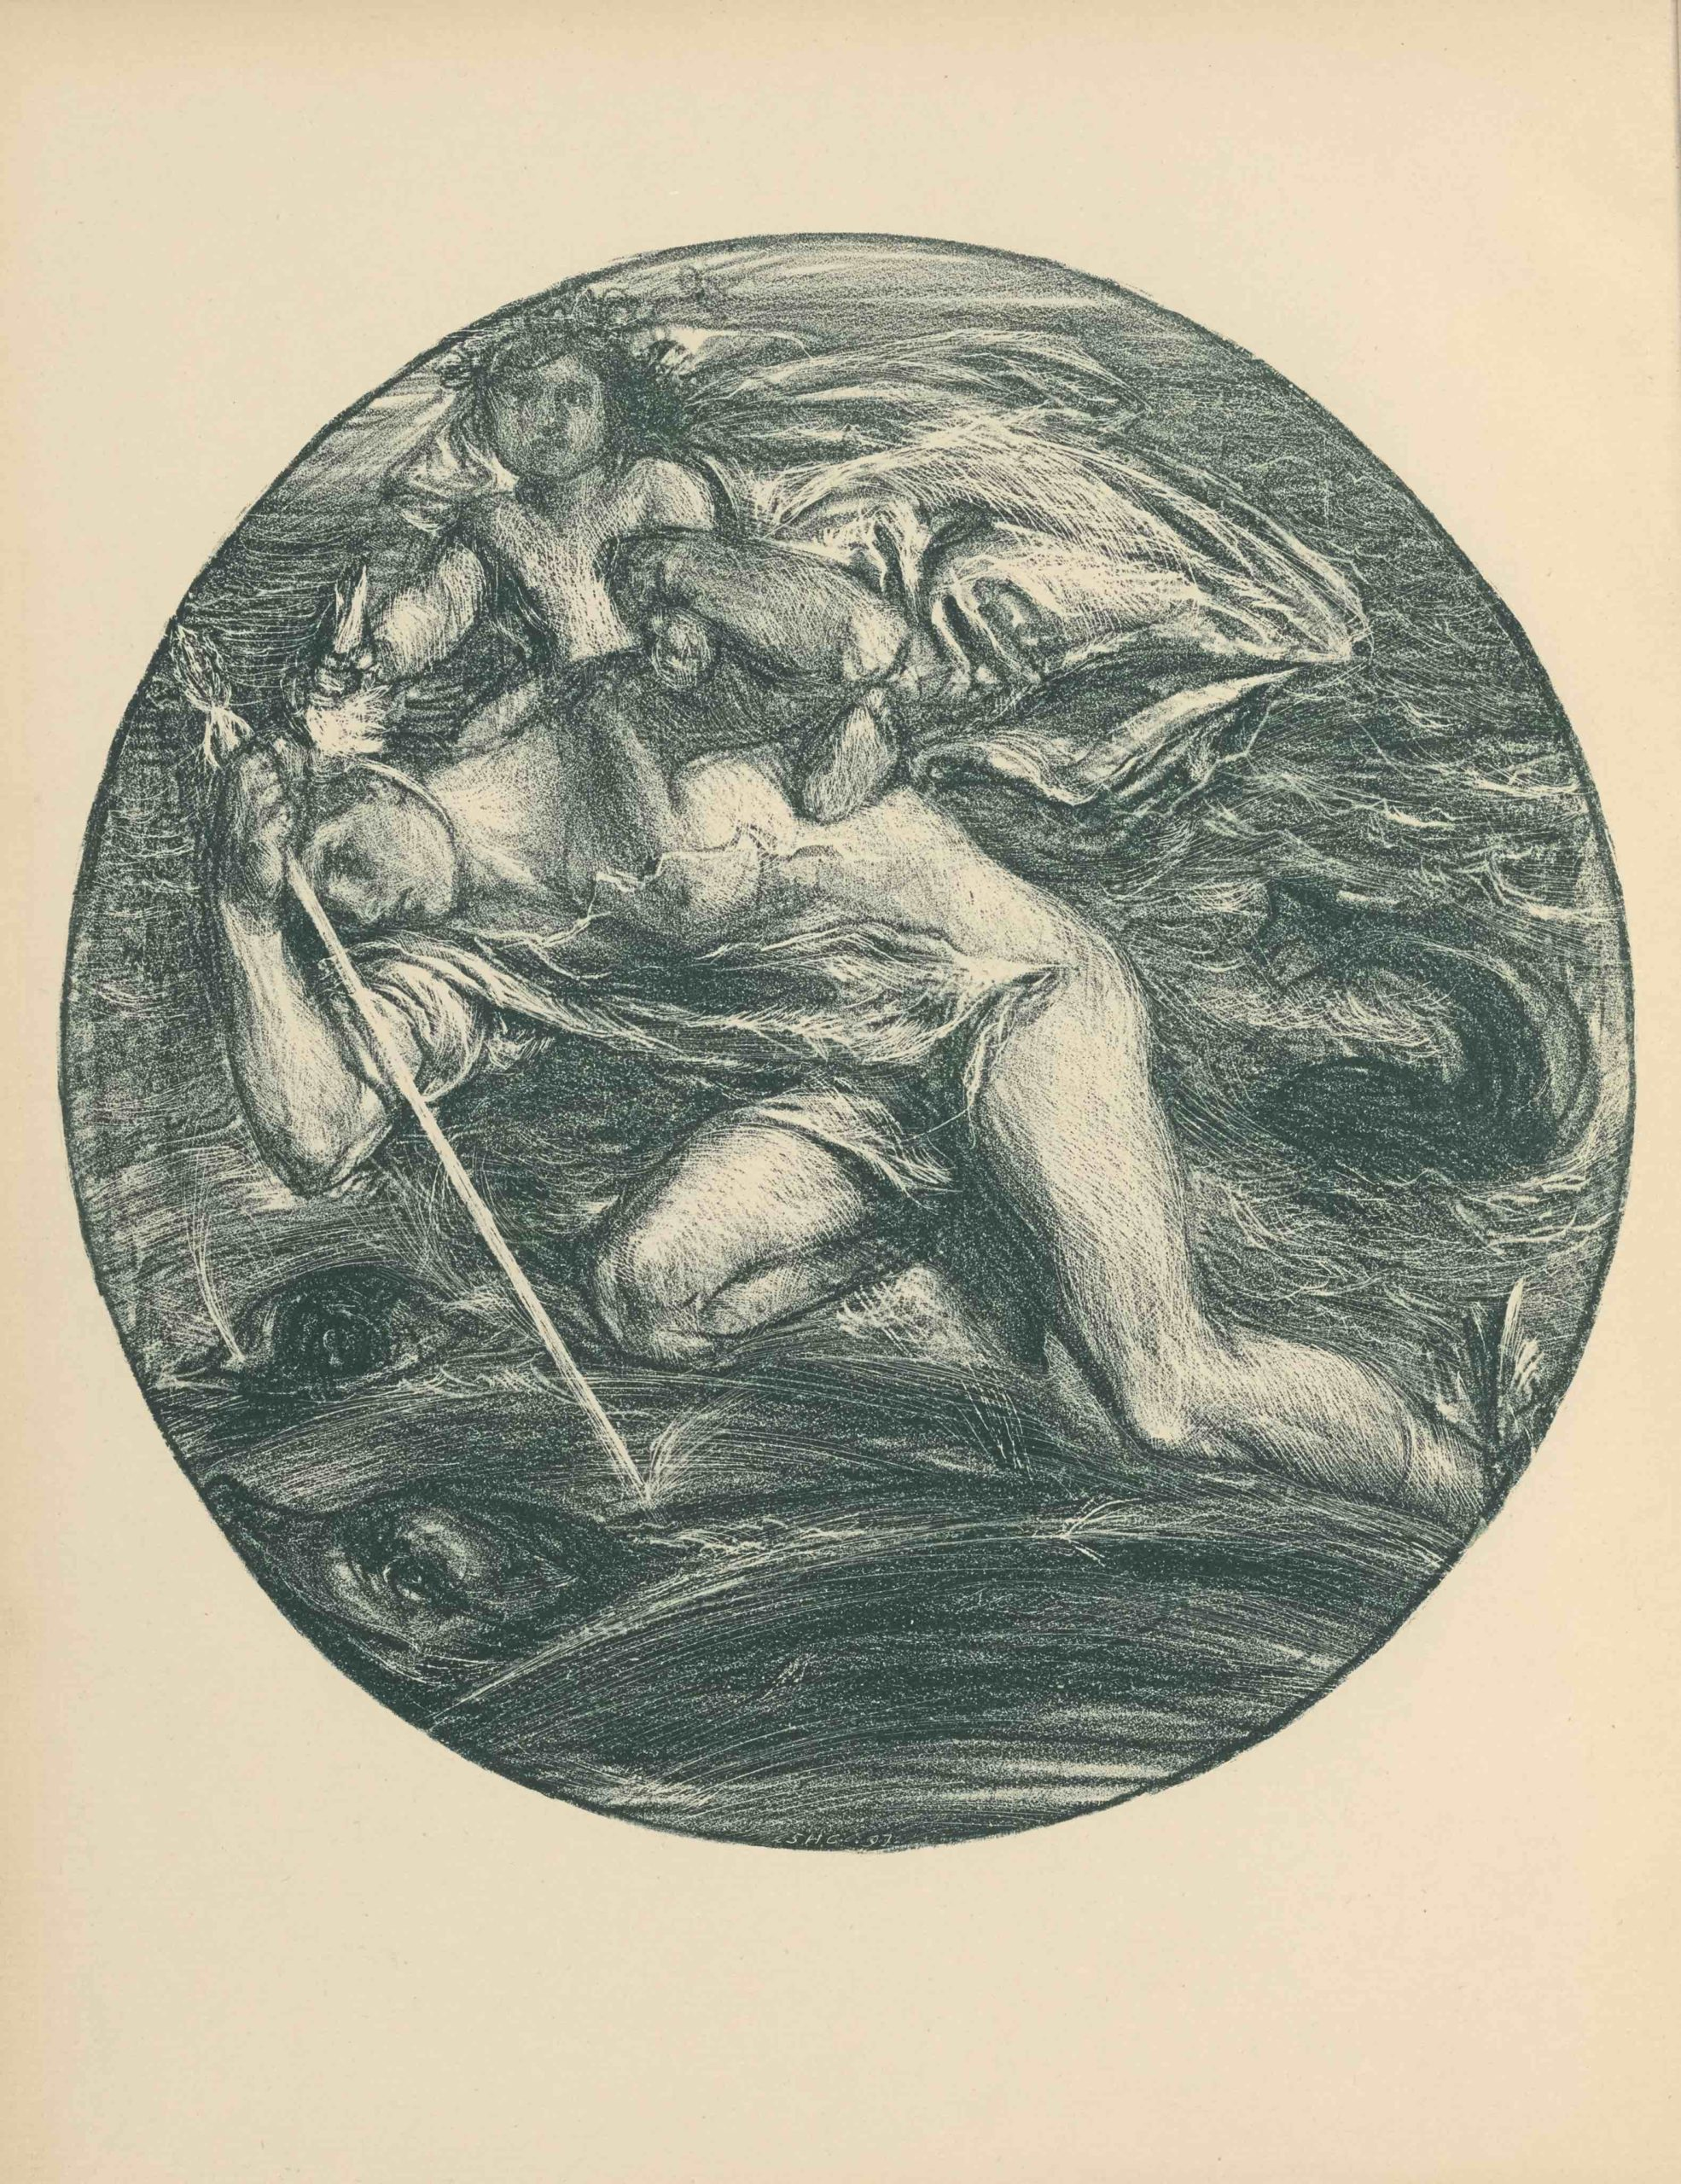 This lithograph is printed in dark blue ink in a roundel shape, with a border. The image depicts two mythological figures, Mercury and Bacchus, traveling over a sea. Mercury takes up most of the image plane; his body is bent, with his feet reaching towards the bottom right of the roundel, and his face and arms bent toward the upper left. His face, bent downwards to his right arm, is in profile. He is naked but draped, holding a scepter in his right hand and wearing a winged helmet and sandals. He carries a child, Bacchus, on his shoulders. The child is nude, and his head is garlanded with flowers. Bacchus grips one wing of the helmet with his right hand while his left arm is gripped by Mercury. Below and behind them, the sea fills the rest of the roundel. Several dolphins swim in the sea, their heads and tails sporadically emerging from the water.